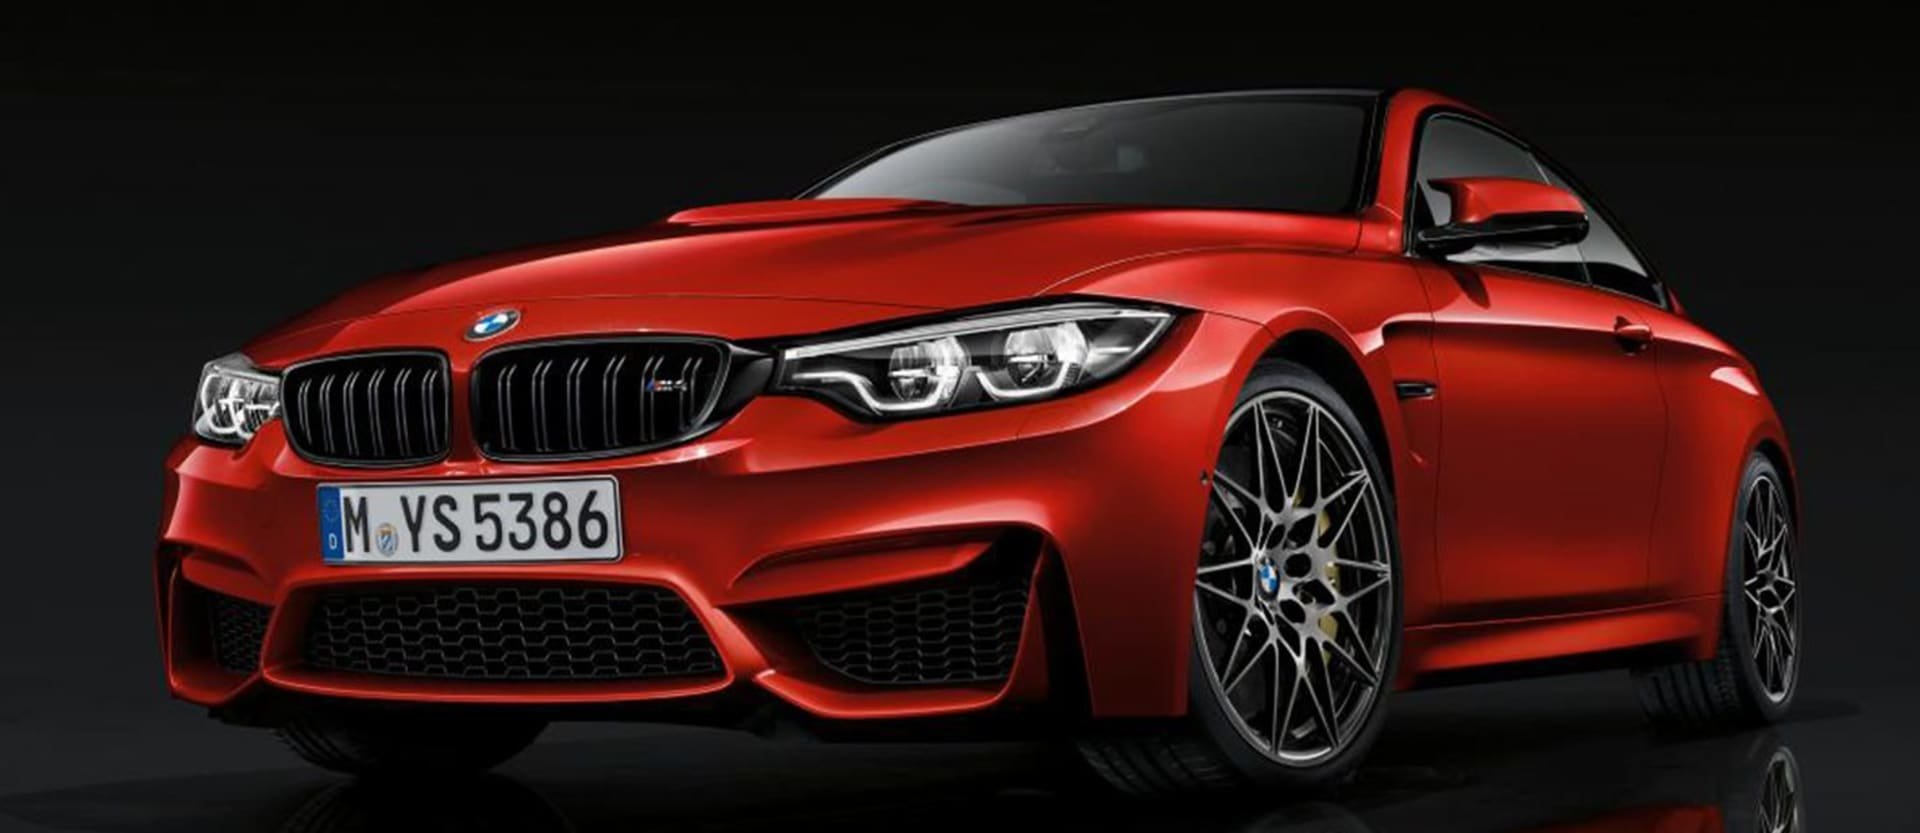 2017 BMW M3 and M4 upgrades bring all-new Pure editions